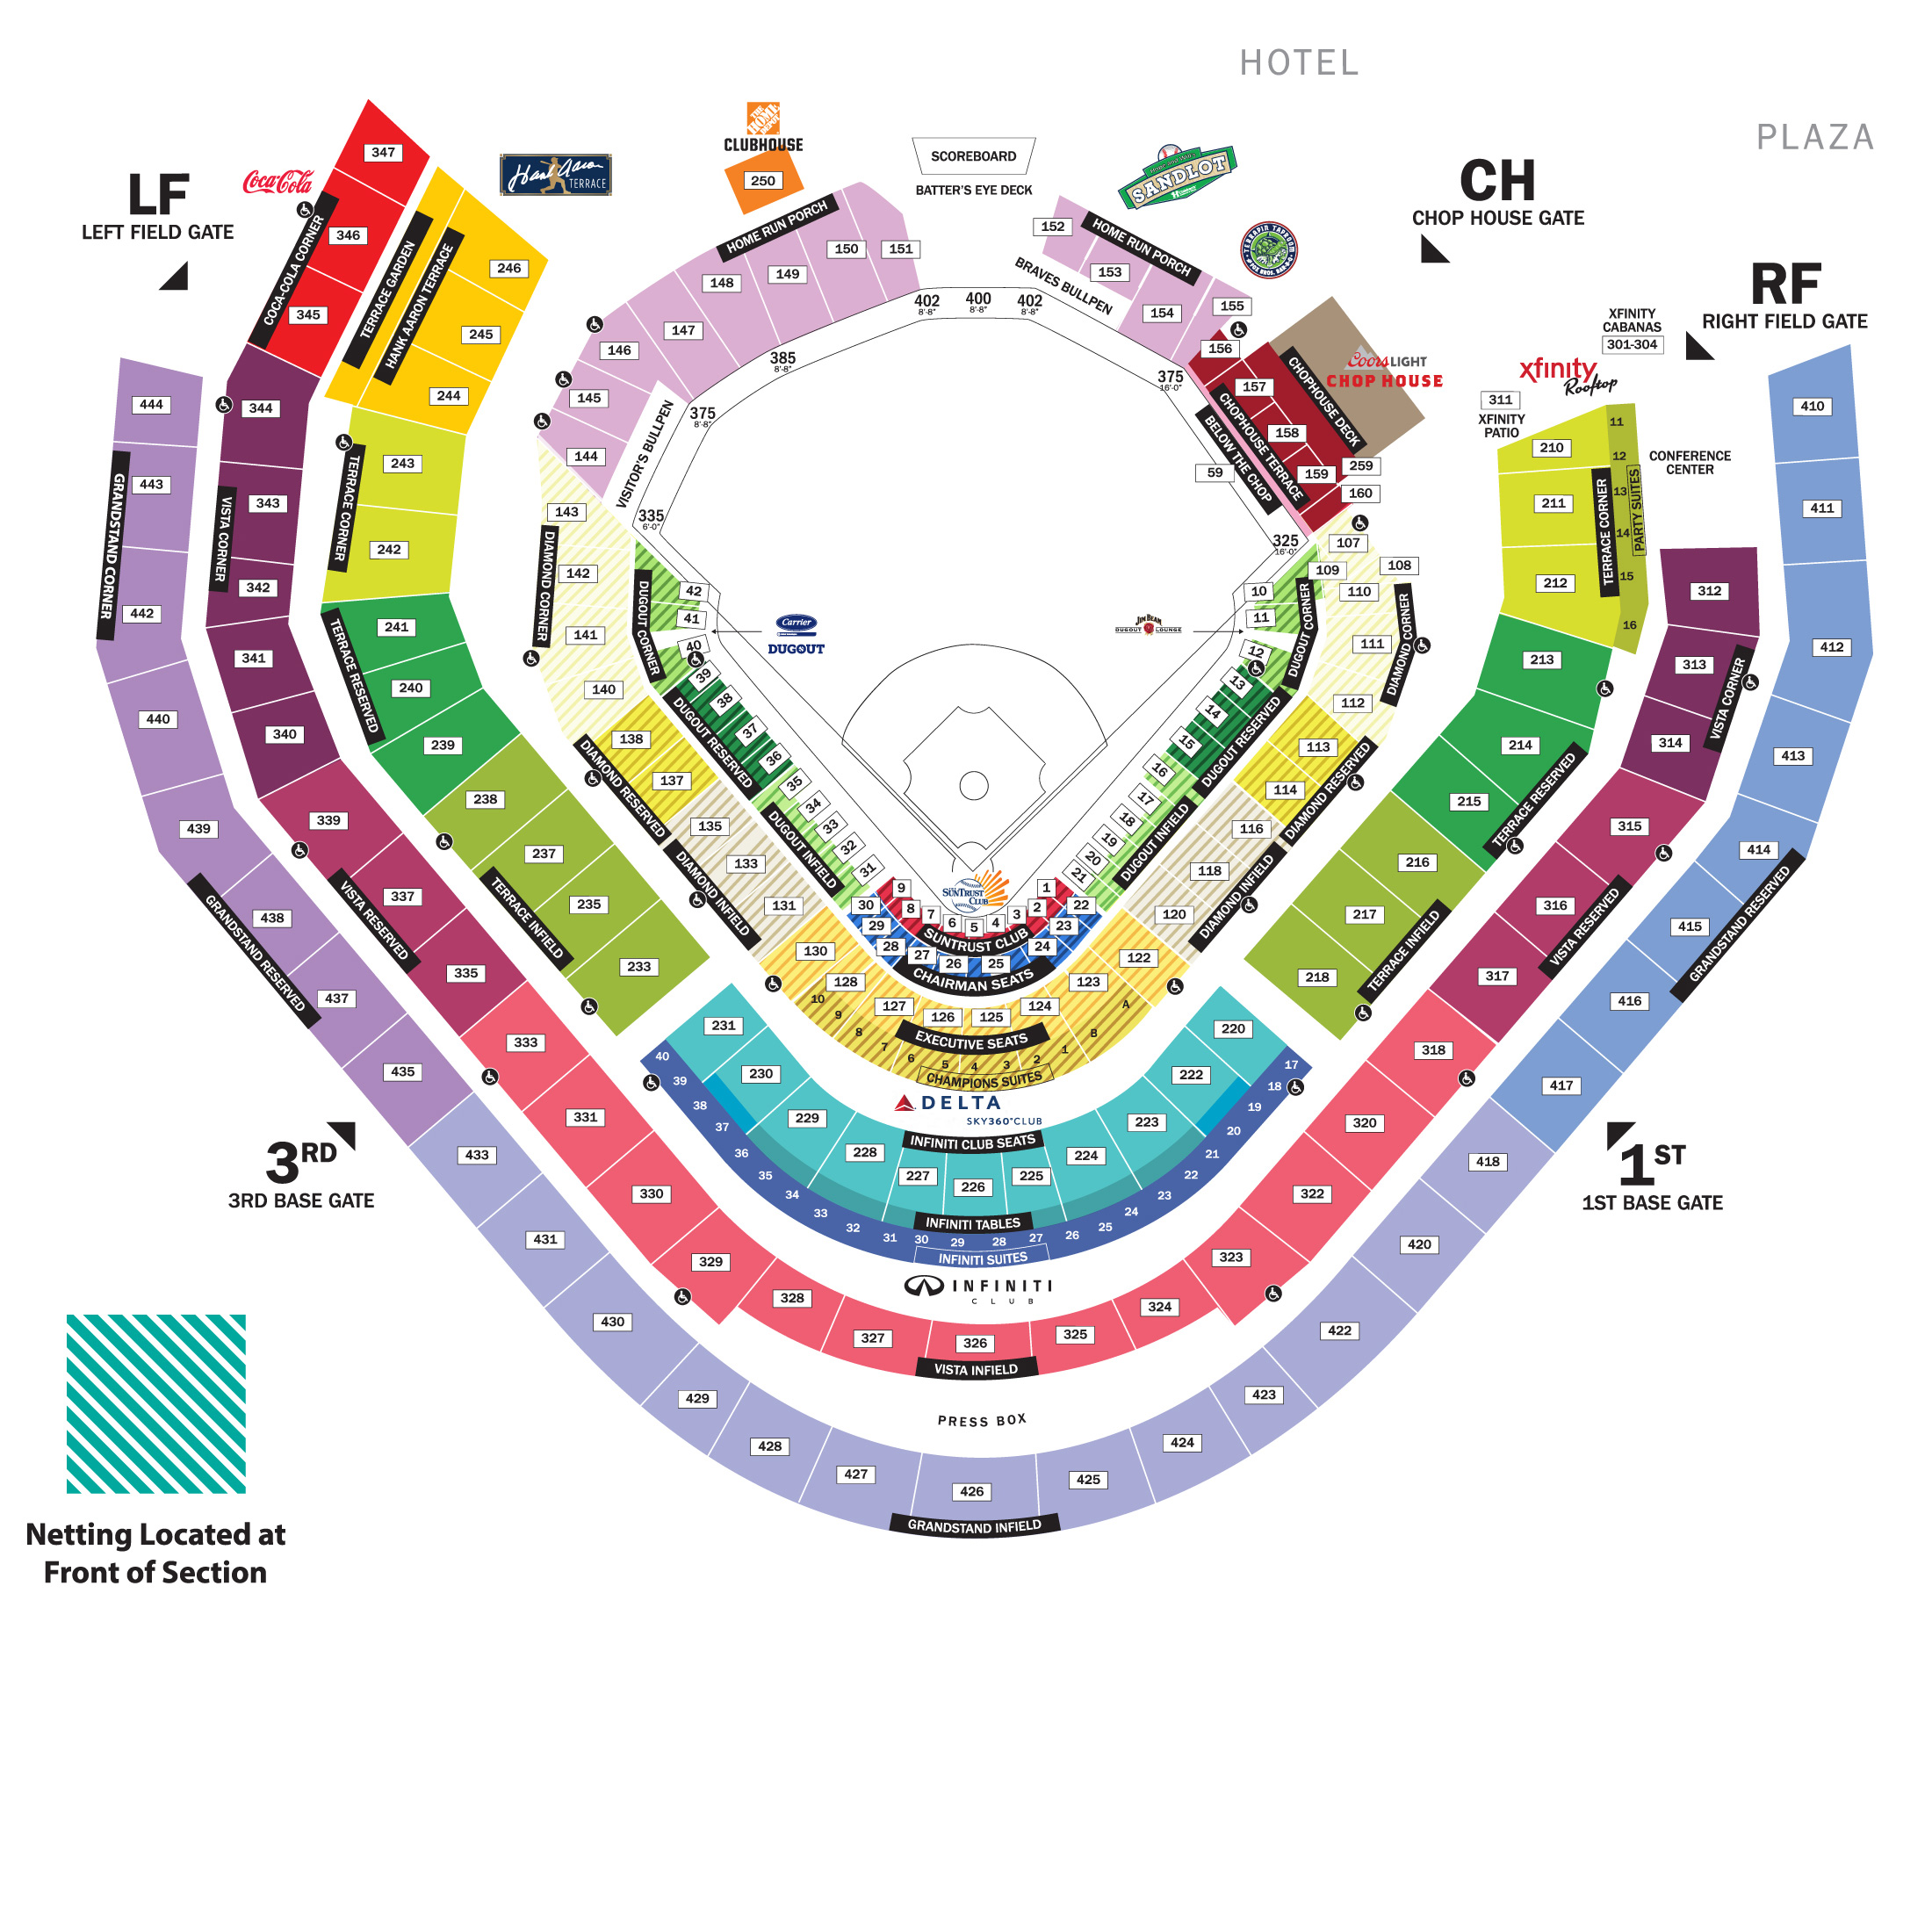 Truist Park Seating Chart | Atlanta ves on cincinnati reds field map, cincinnati reds program, cincinnati reds rosie, cincinnati reds team, cincinnati reds logo 2012, cincinnati reds hall of fame, cincinnati reds players, cincinnati reds mustache, cincinnati reds artwork, cincinnati reds promotions, great american ballpark map, cincinnati reds c logo, cincinnati reds ticket prices, cincinnati bengals stadium map, cincinnati reds mr. red, cincinnati reds symbol, cincinnati reds nasty boys, cincinnati reds 2015,